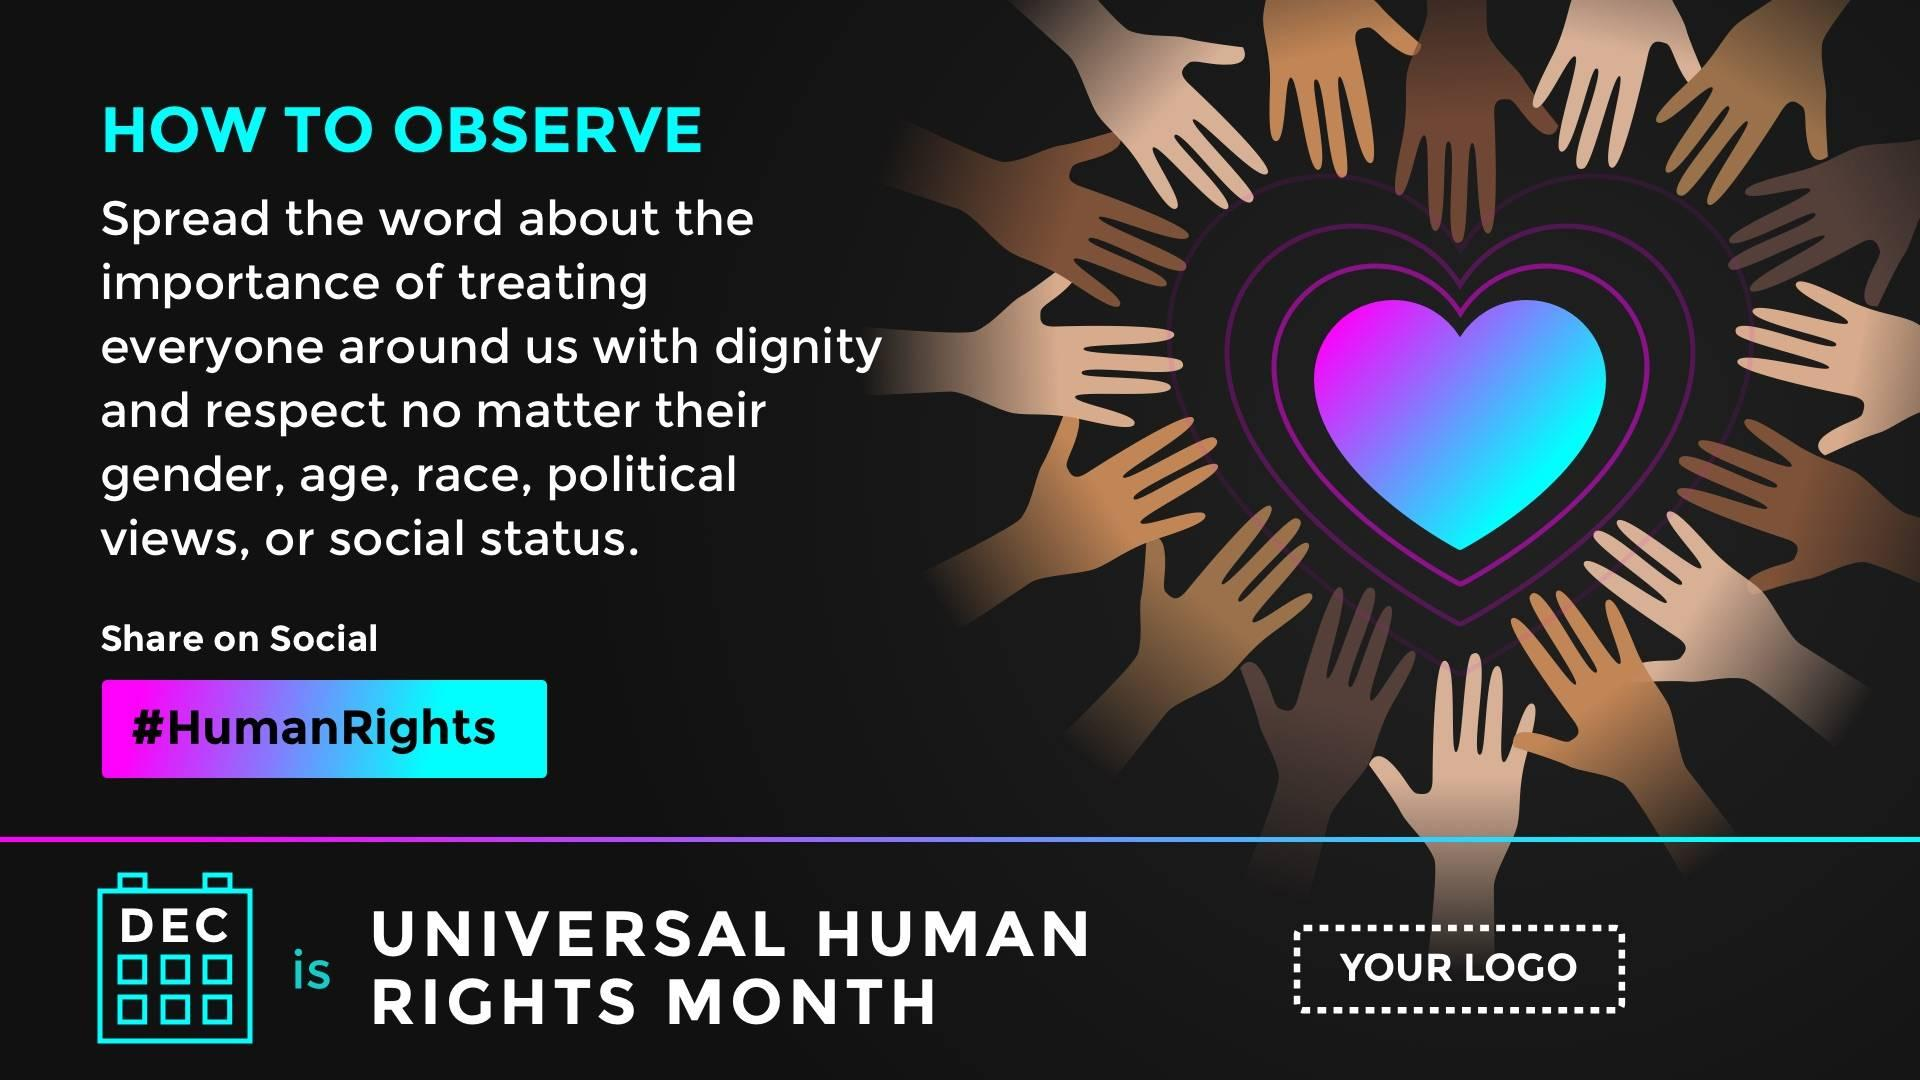 Universal Human Rights Month Digital Signage Template